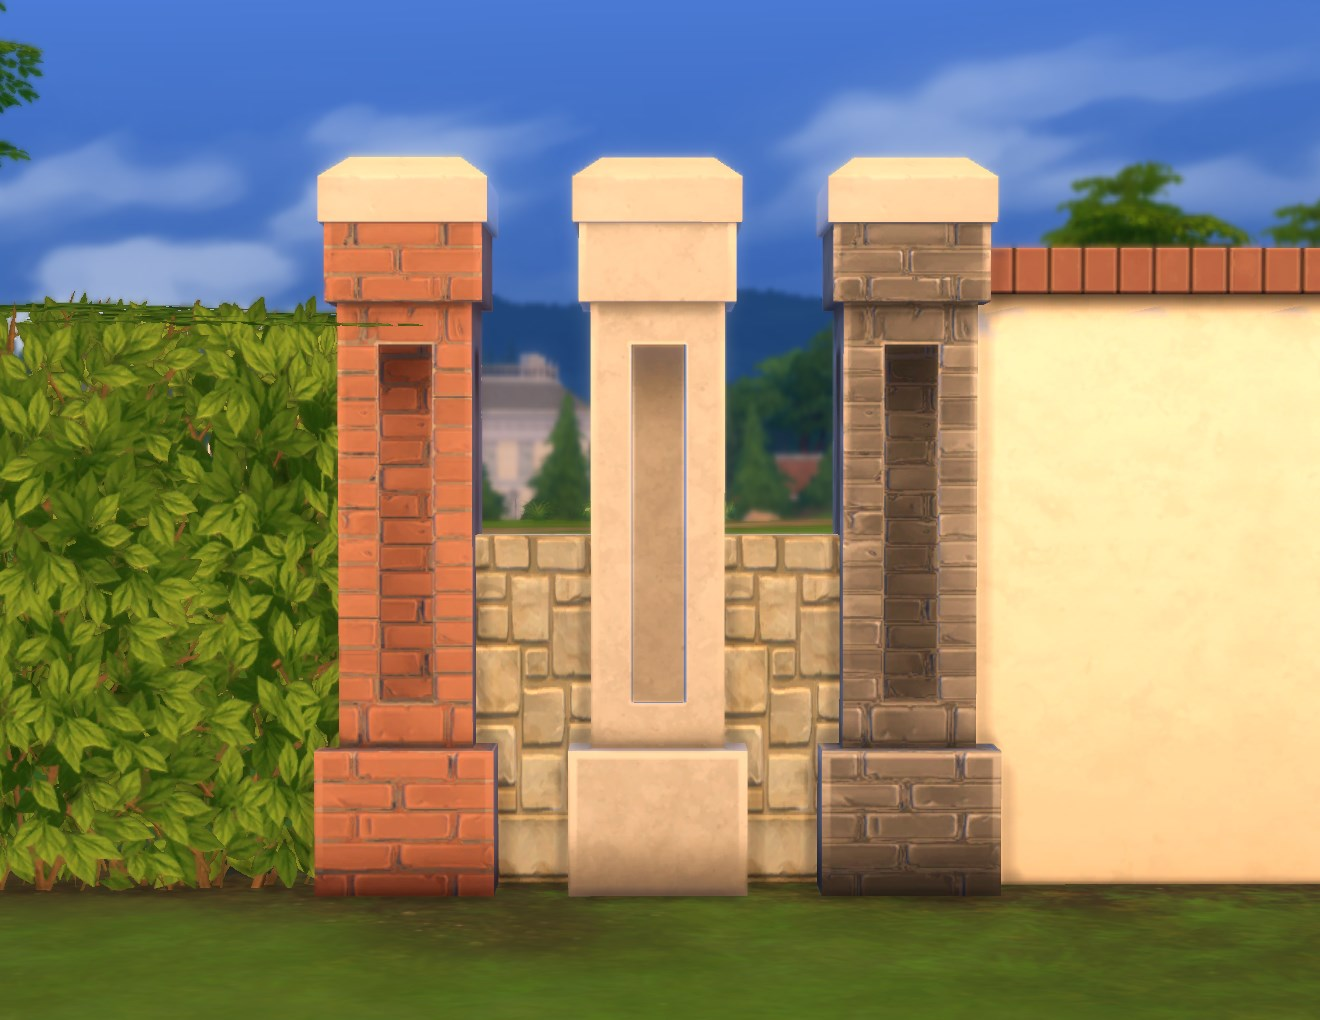 decorative fence post glass fence stone wall its from so that one can decide for oneself where the posts should go or used as decorative post gates porches and like mod the sims stonework fencepost